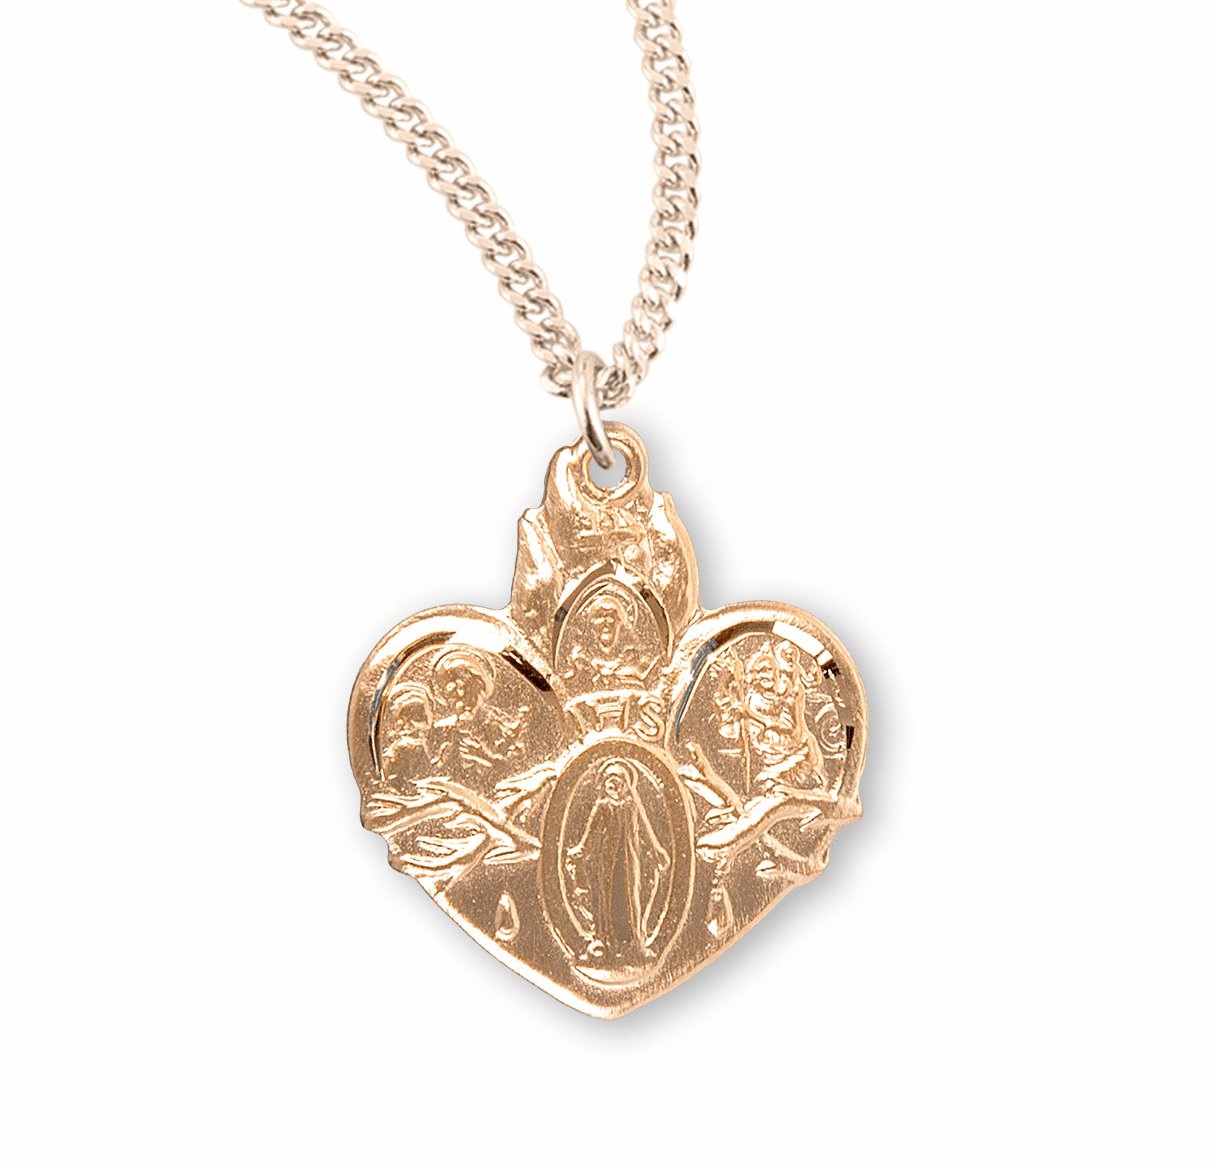 4-Way Sacred Heart of Jesus Gold/Sterling Necklace by HMH Religious